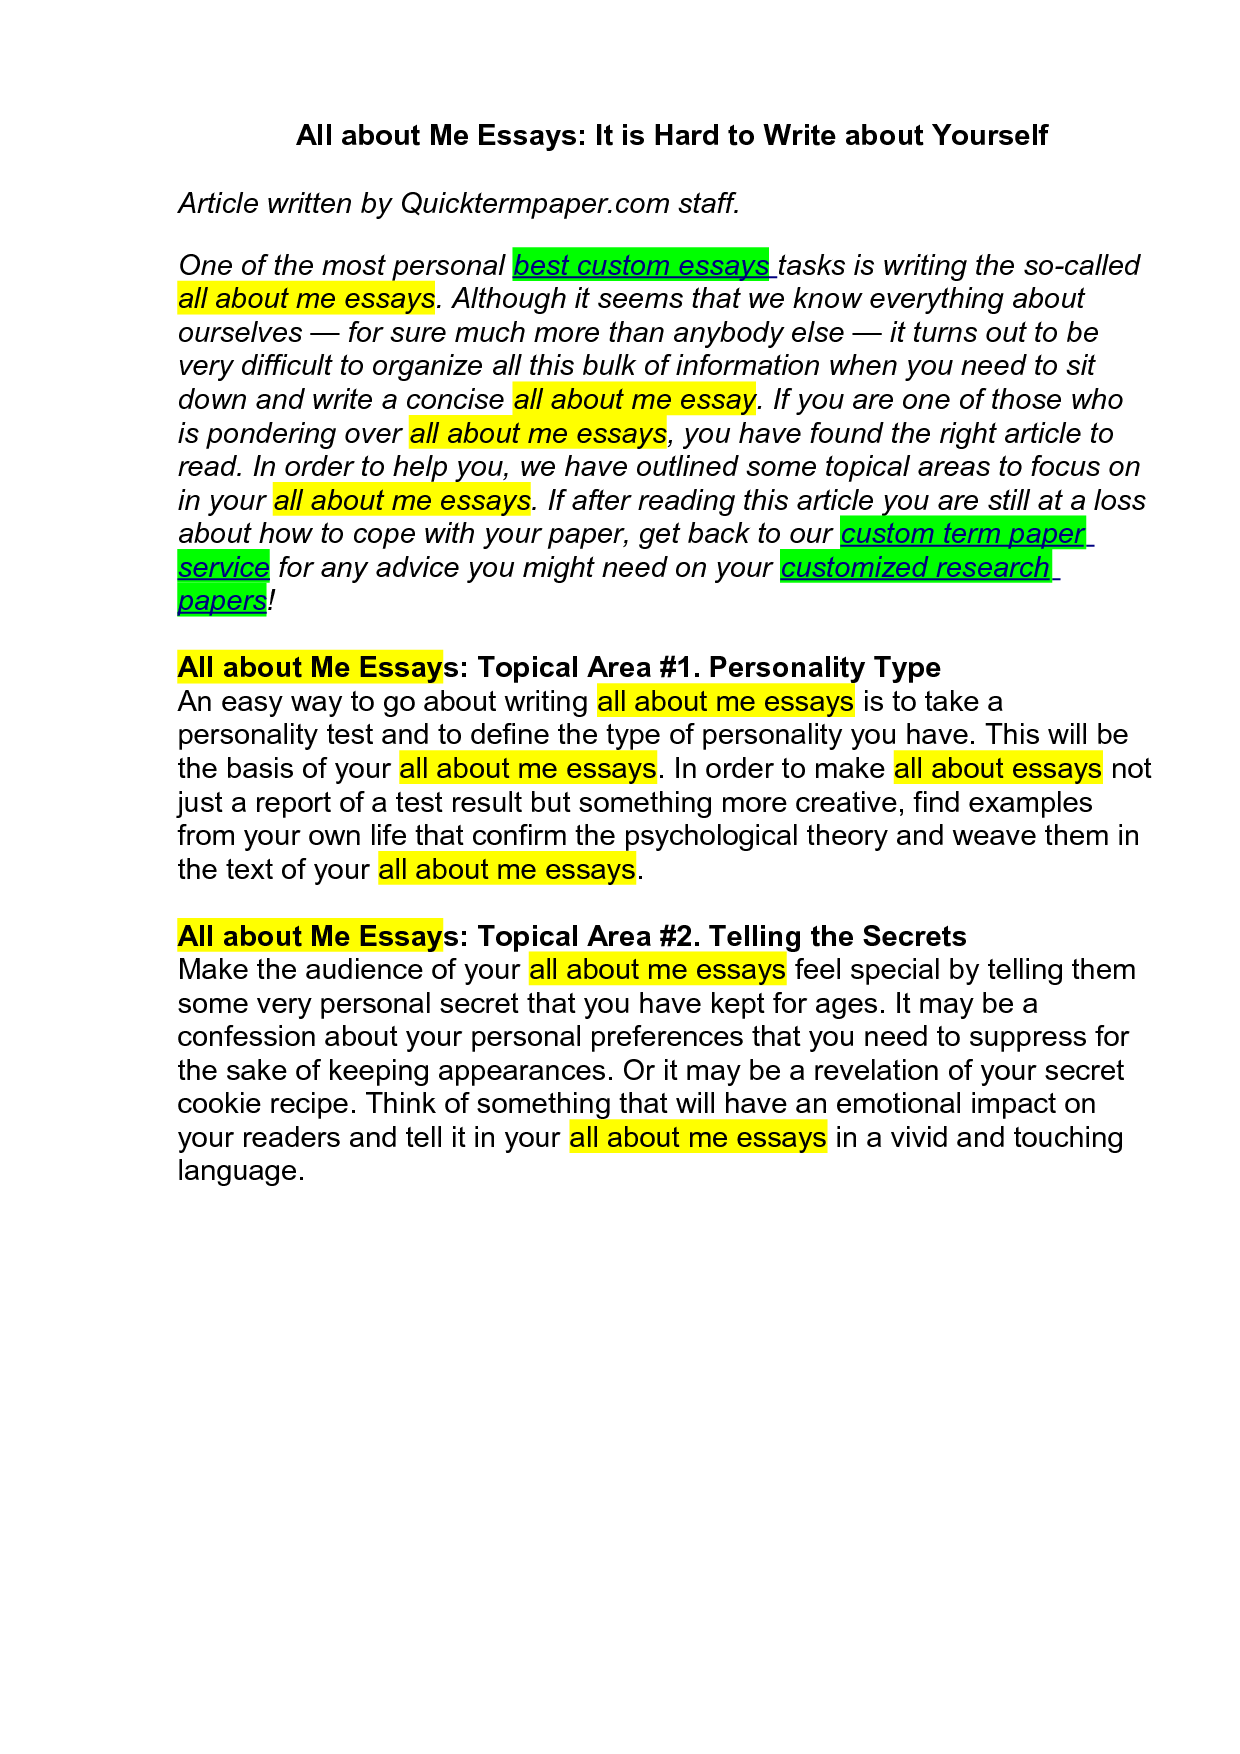 021 Essay Example How To Start An Amazing Bad With A Question Ways Definition Full